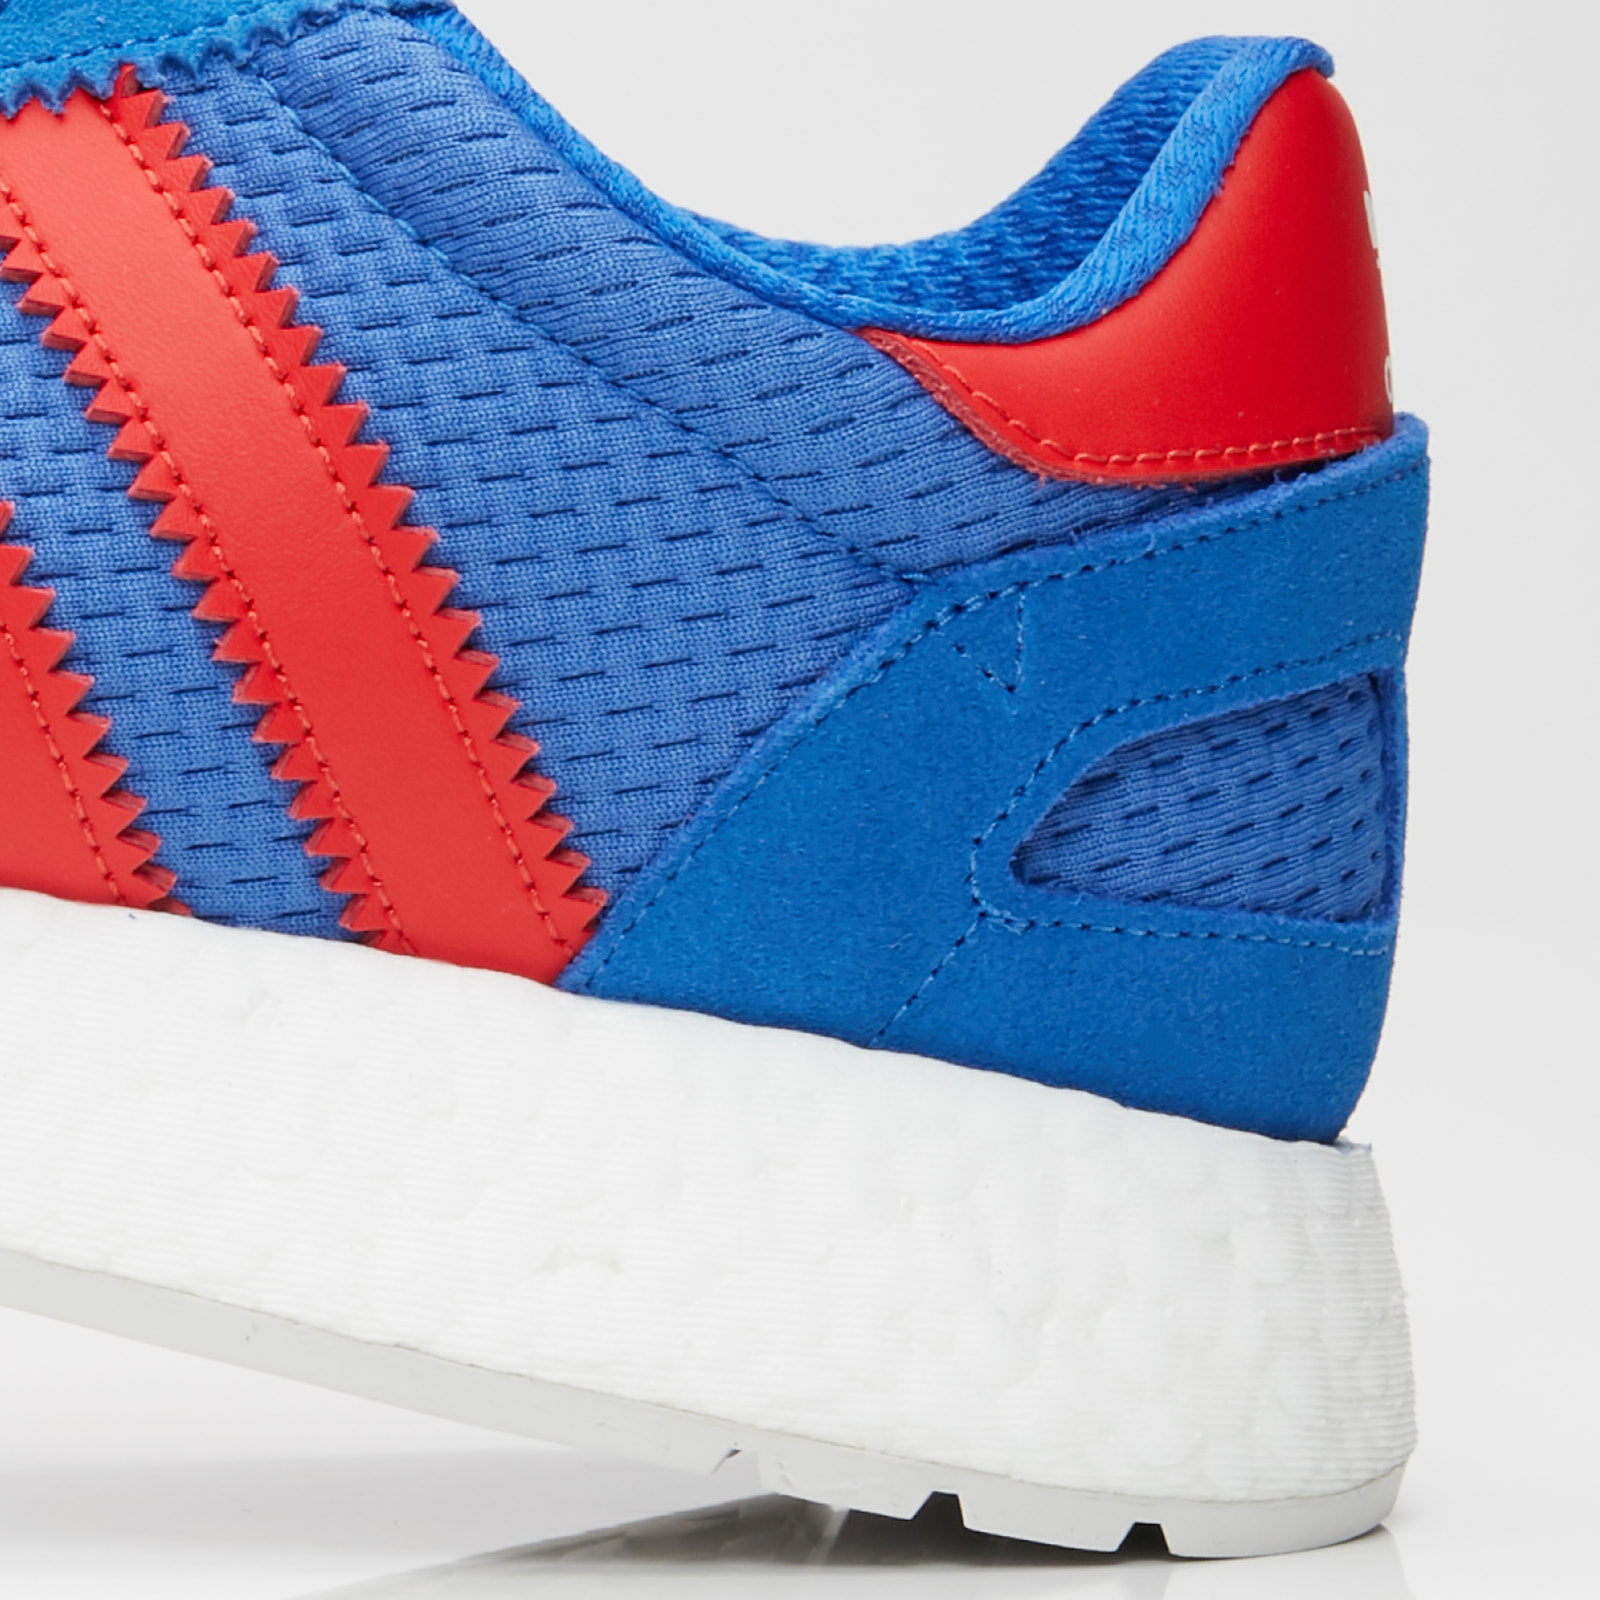 06-adidas-i-5923-hi-res-blue-red-d96605